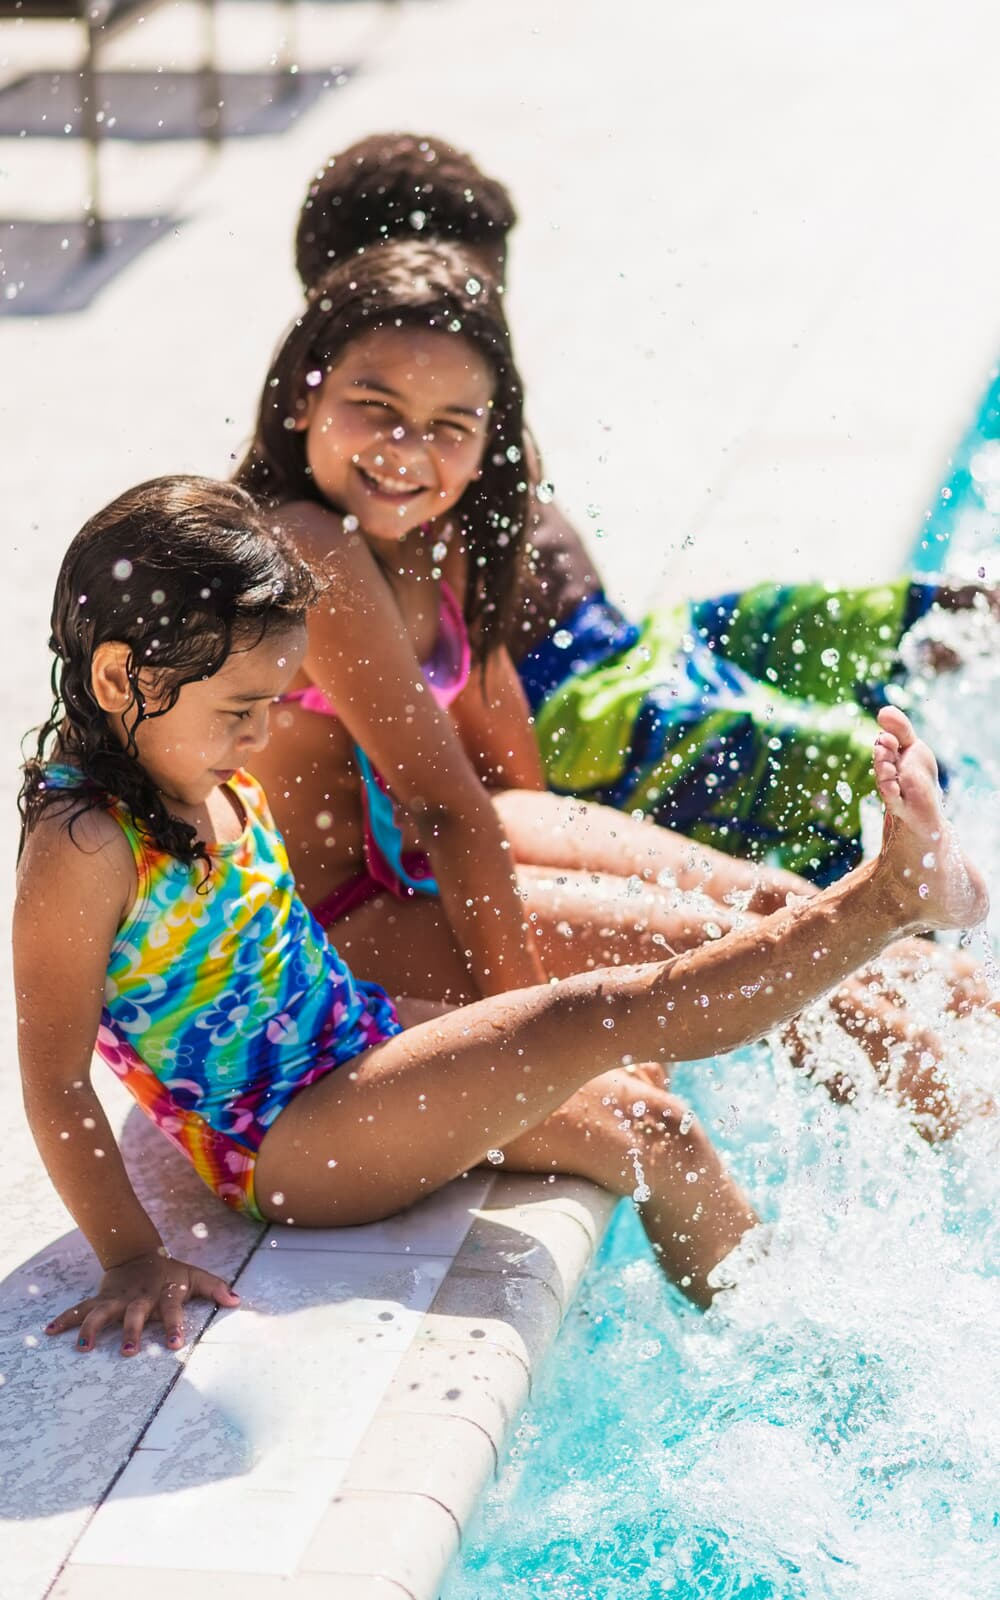 Kids splashing in a pool | The Groves in Whittier, CA | Brookfield Residential